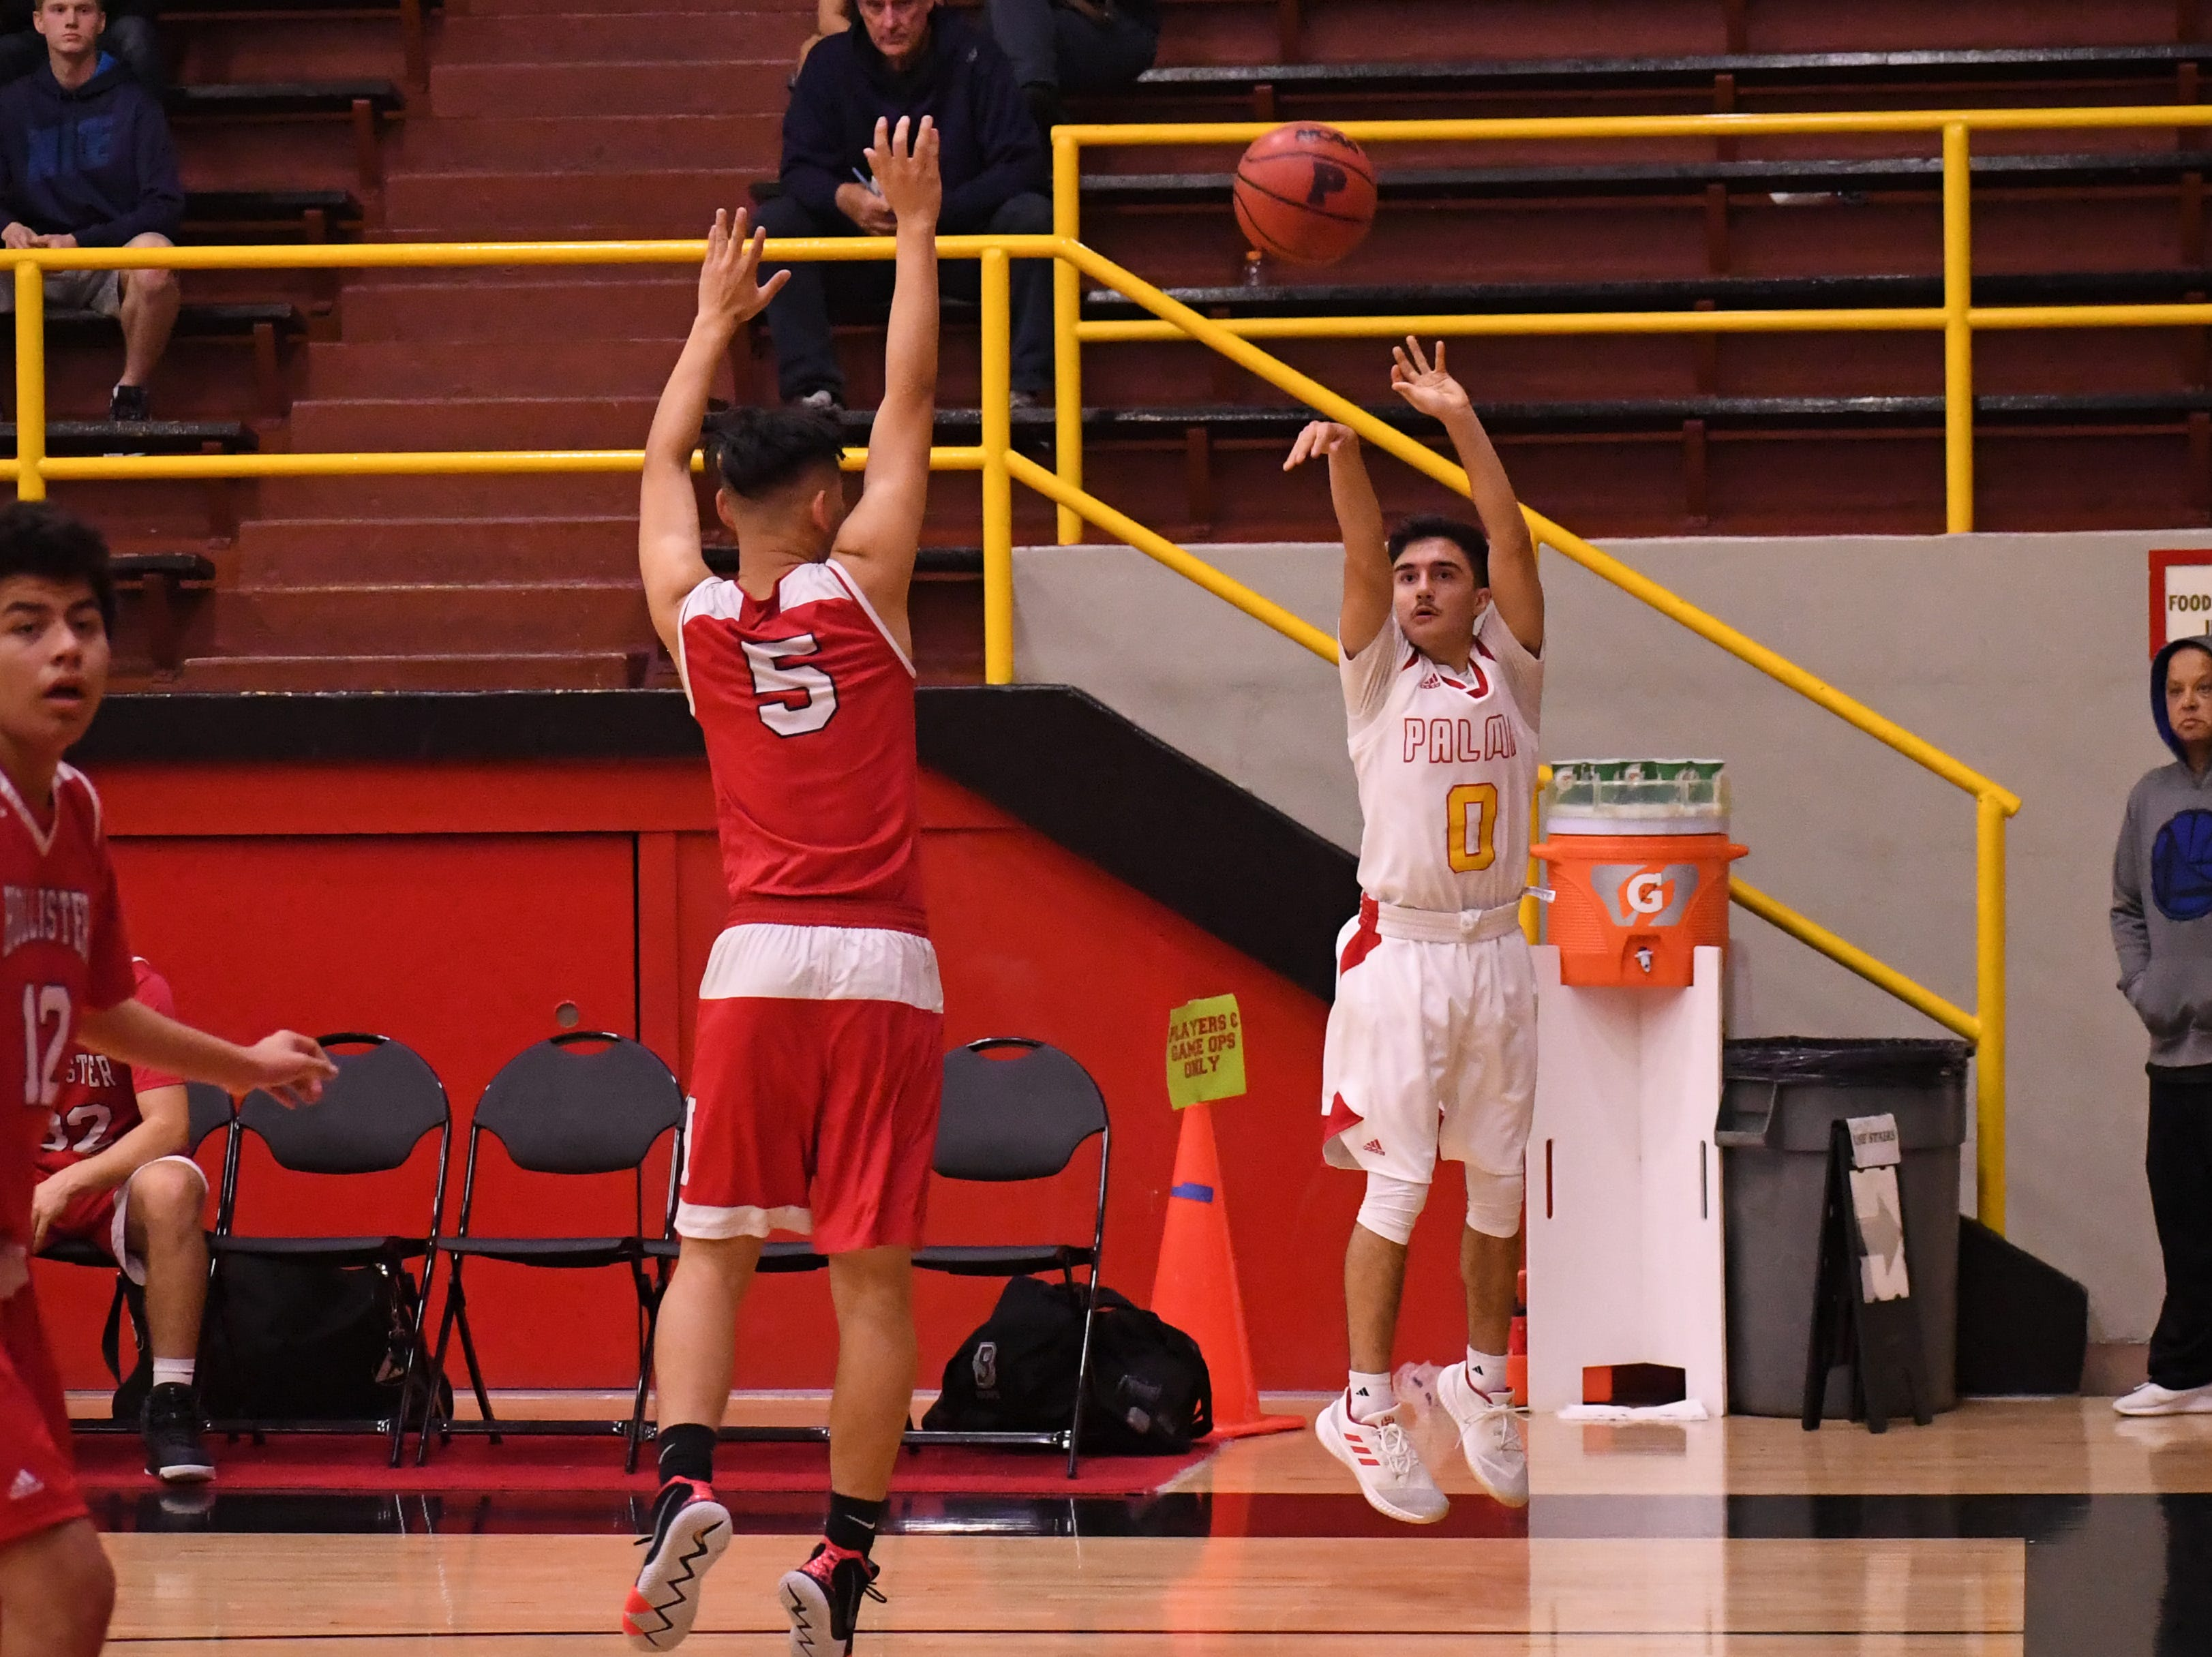 Palma guard AJ Suniga (0) makes one of his pair of 3-pointers in the game against San Benito.